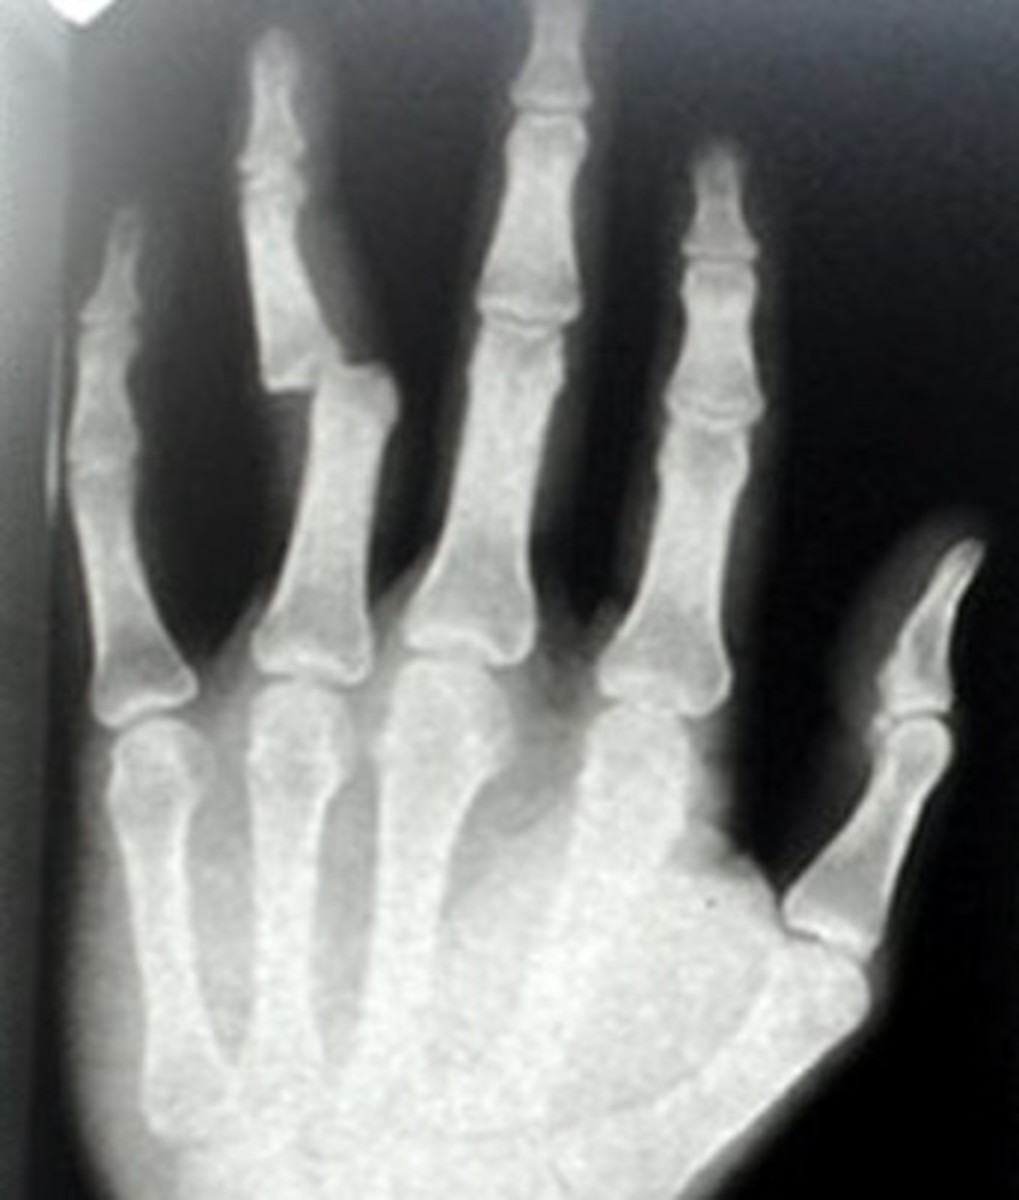 Broken Finger - Symptoms, Diagnosis, Healing time, Treatment